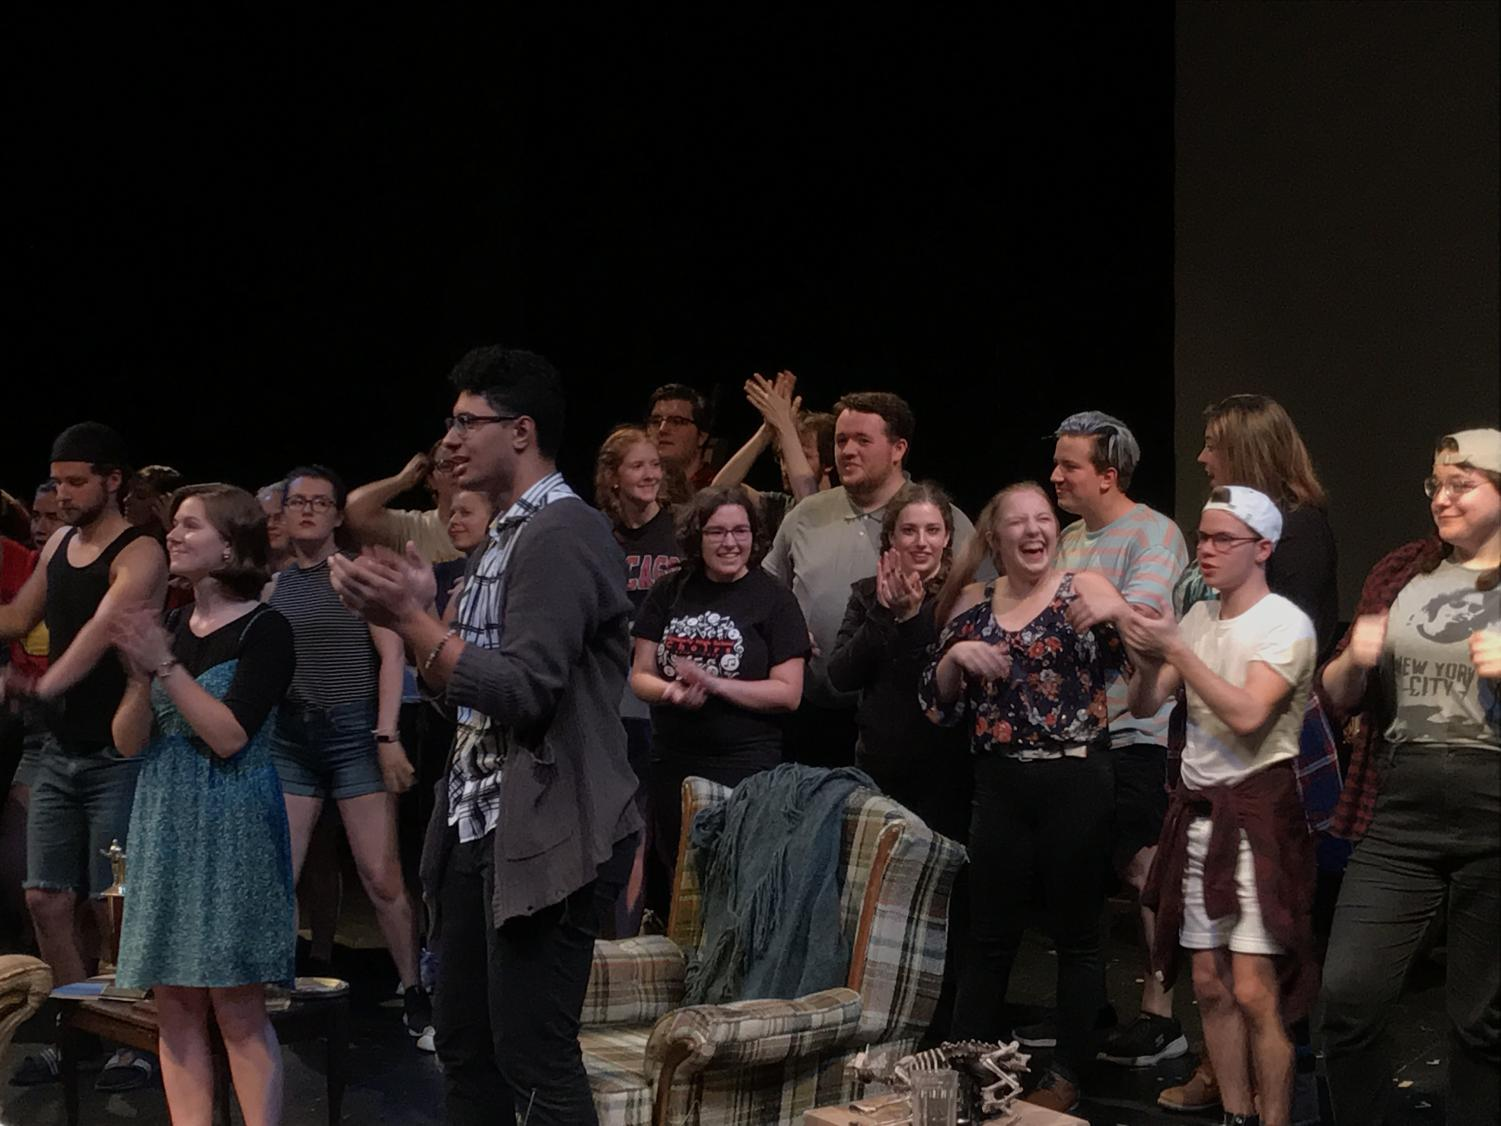 The 24 hour show was held at 7:30 p.m. on Sept. 21 in the Riverside Theatre of the Haas Fine Arts Center.